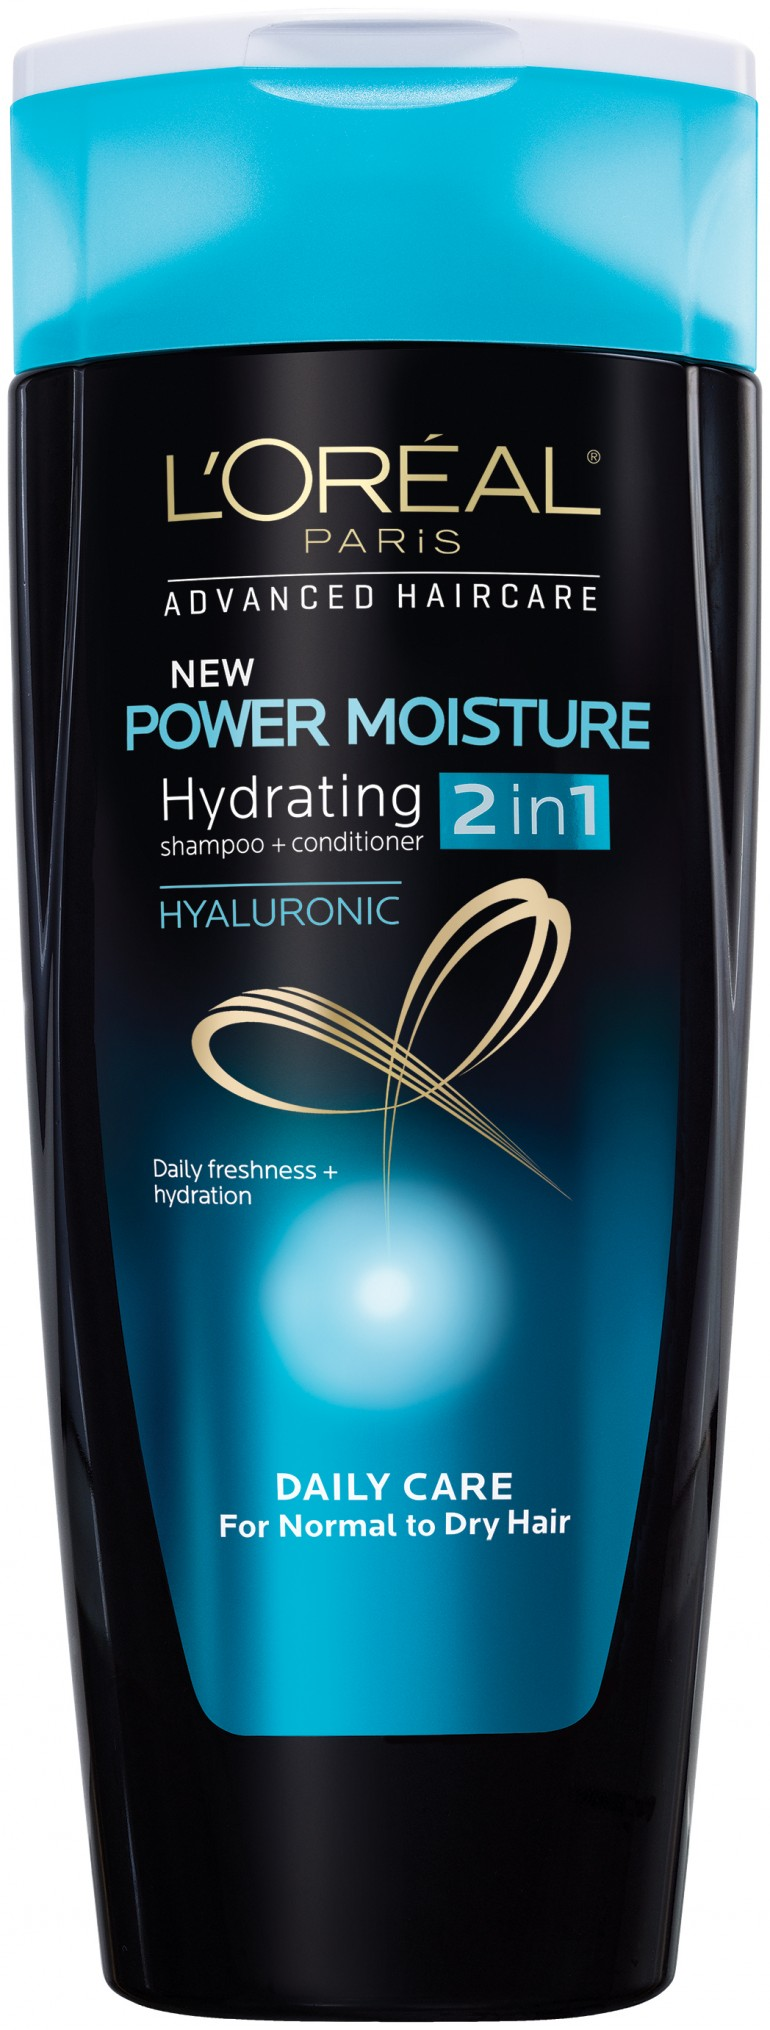 L'Oreal Paris Advanced Haircare Power Moisture 2 in 1 Shampoo and Conditioner